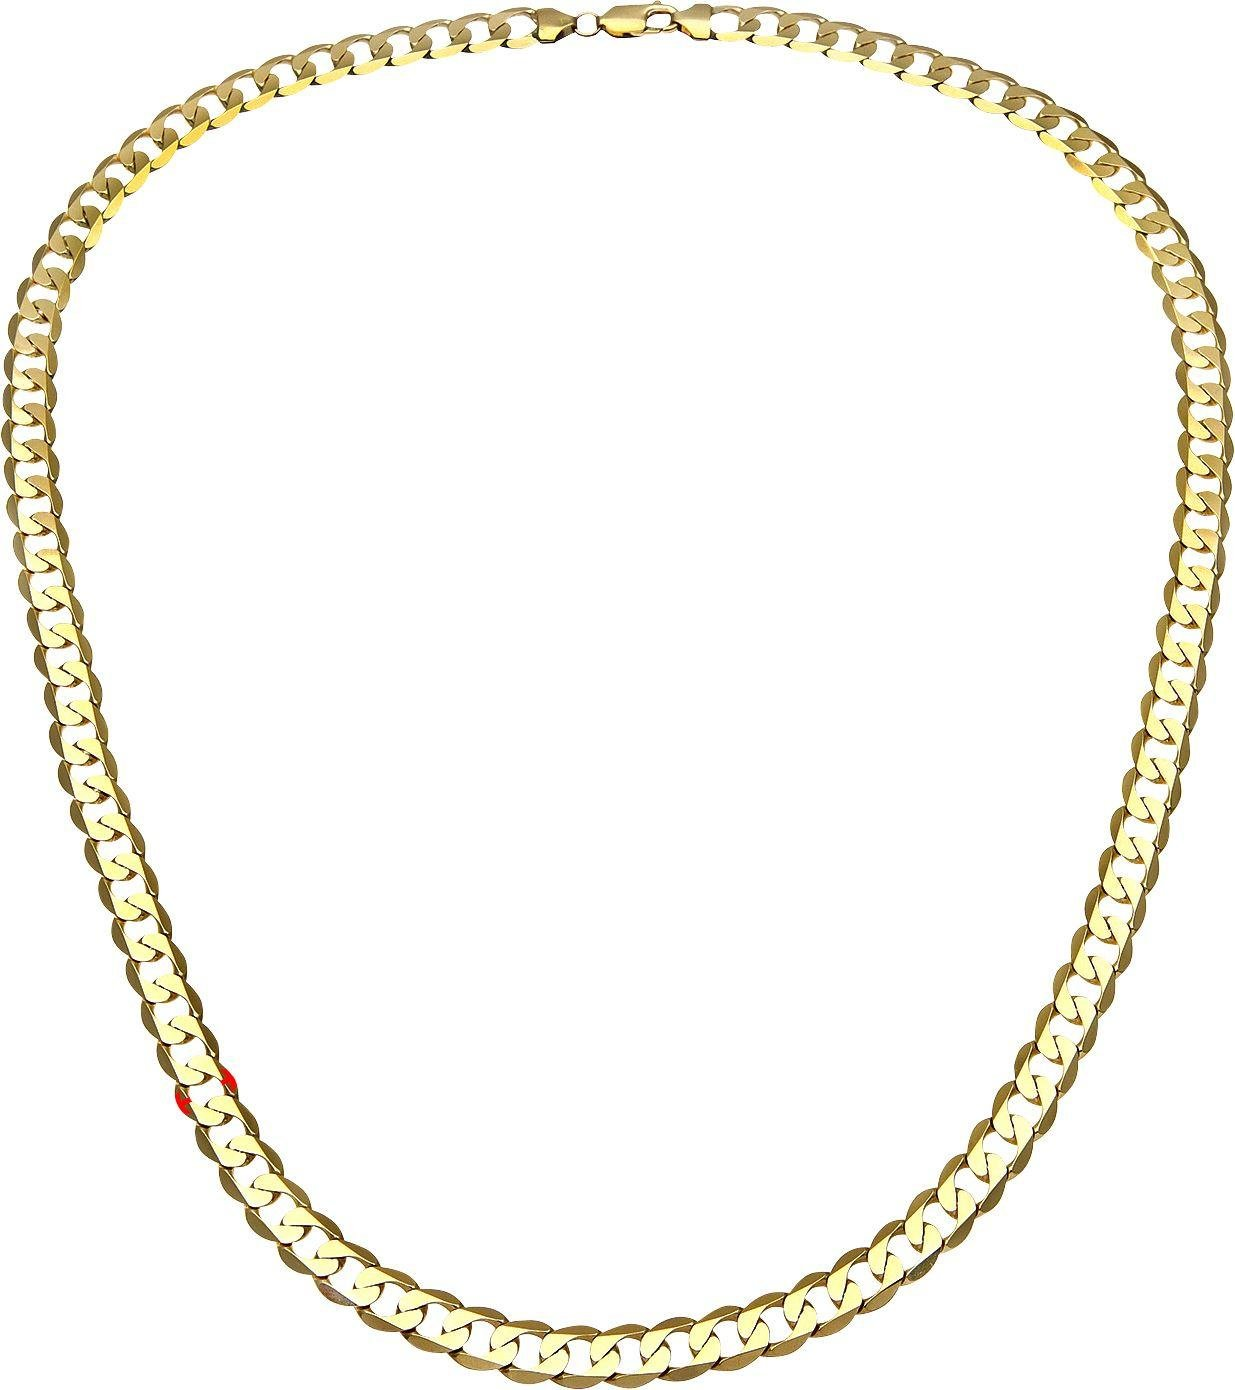 Image of 9ct Gold 18 inch Curb Chain Necklace